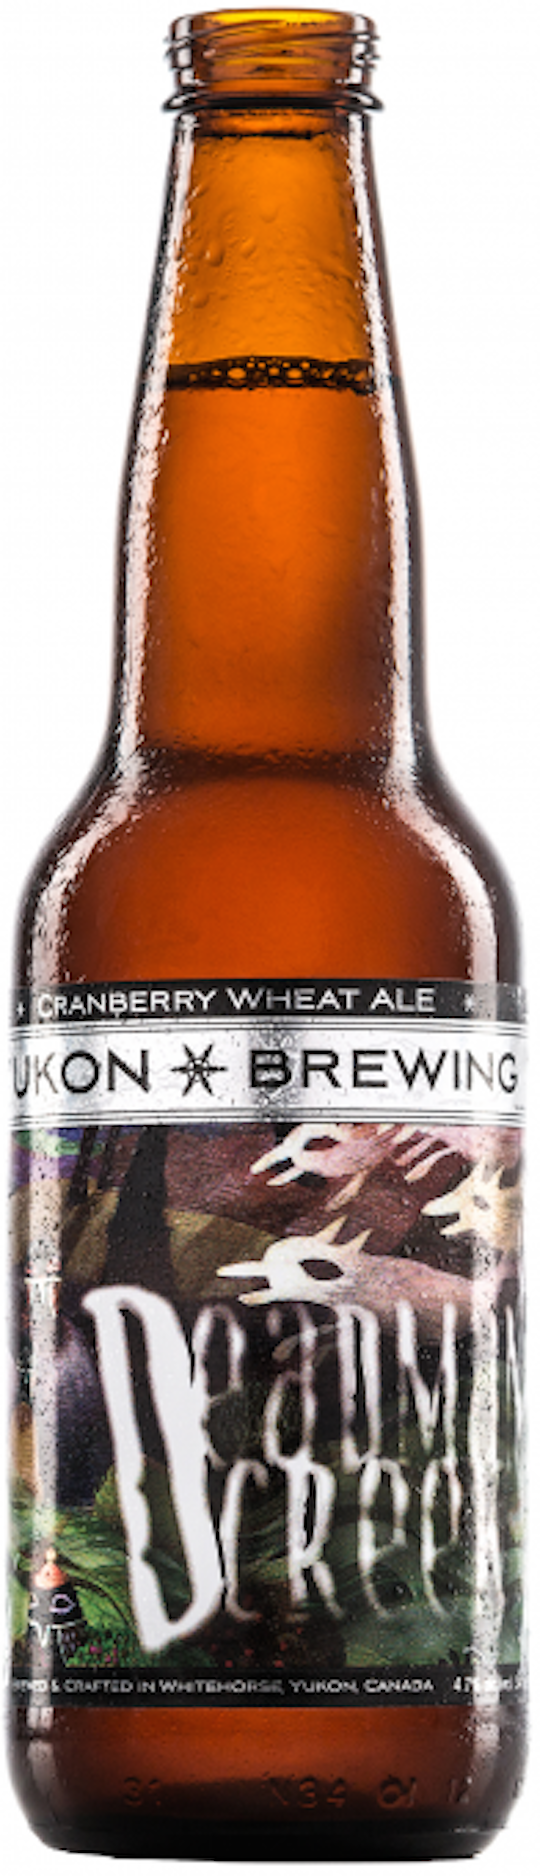 yukon-brewing-deadman-creek_1480025210